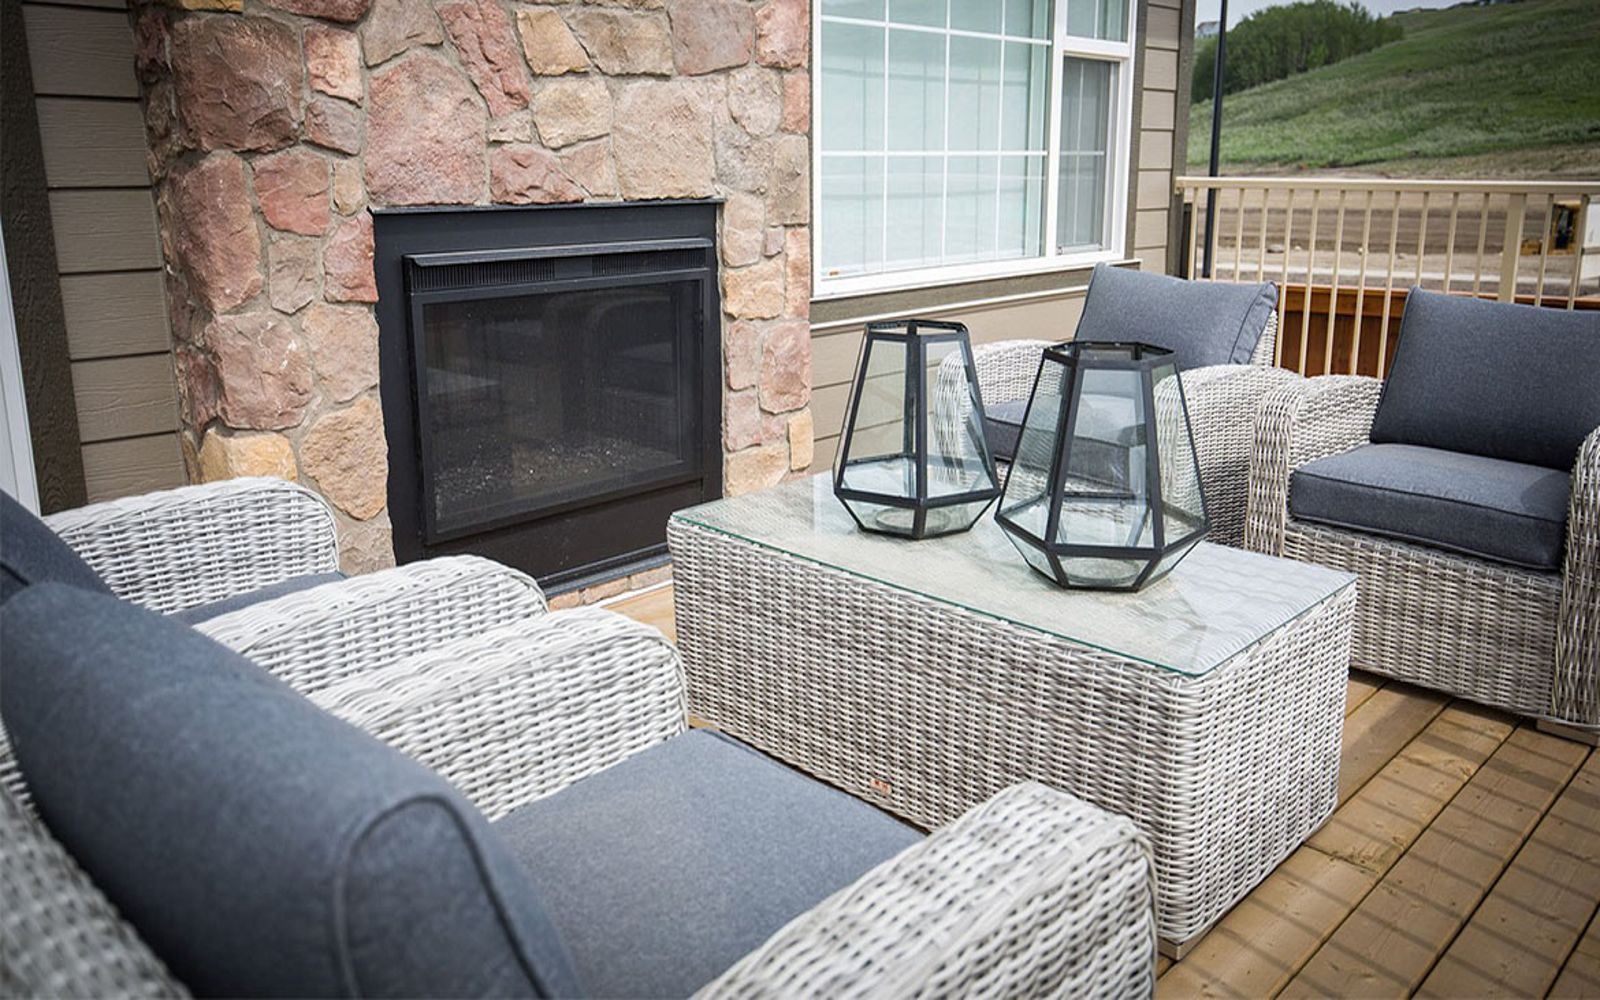 patio-fireplace-hudsonii-cranstons-riverstone-calgary